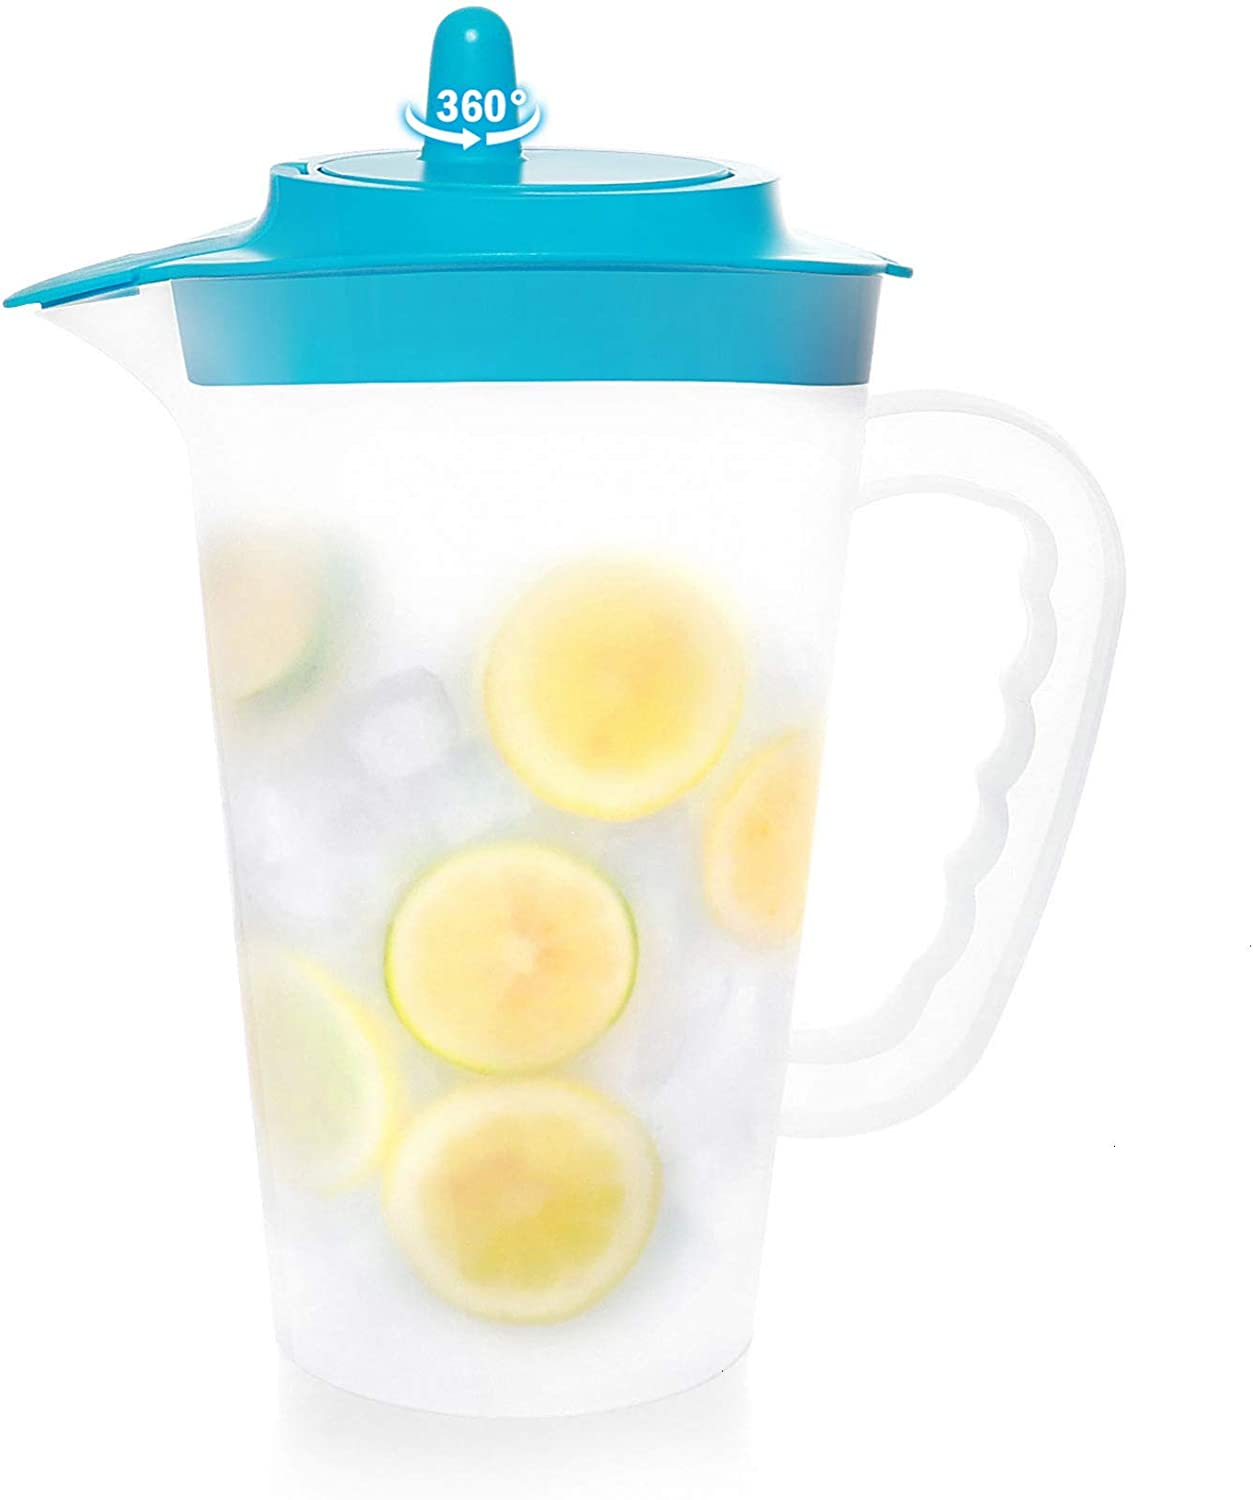 COYMOS Mixing Pitcher 2.4 qt Large Plastic Pitcher with Lid Iced Tea Pitcher for Fridge, Translucent, Great for Lemon Juice, Ice Tea, Fruit Tea, Gift for Chef